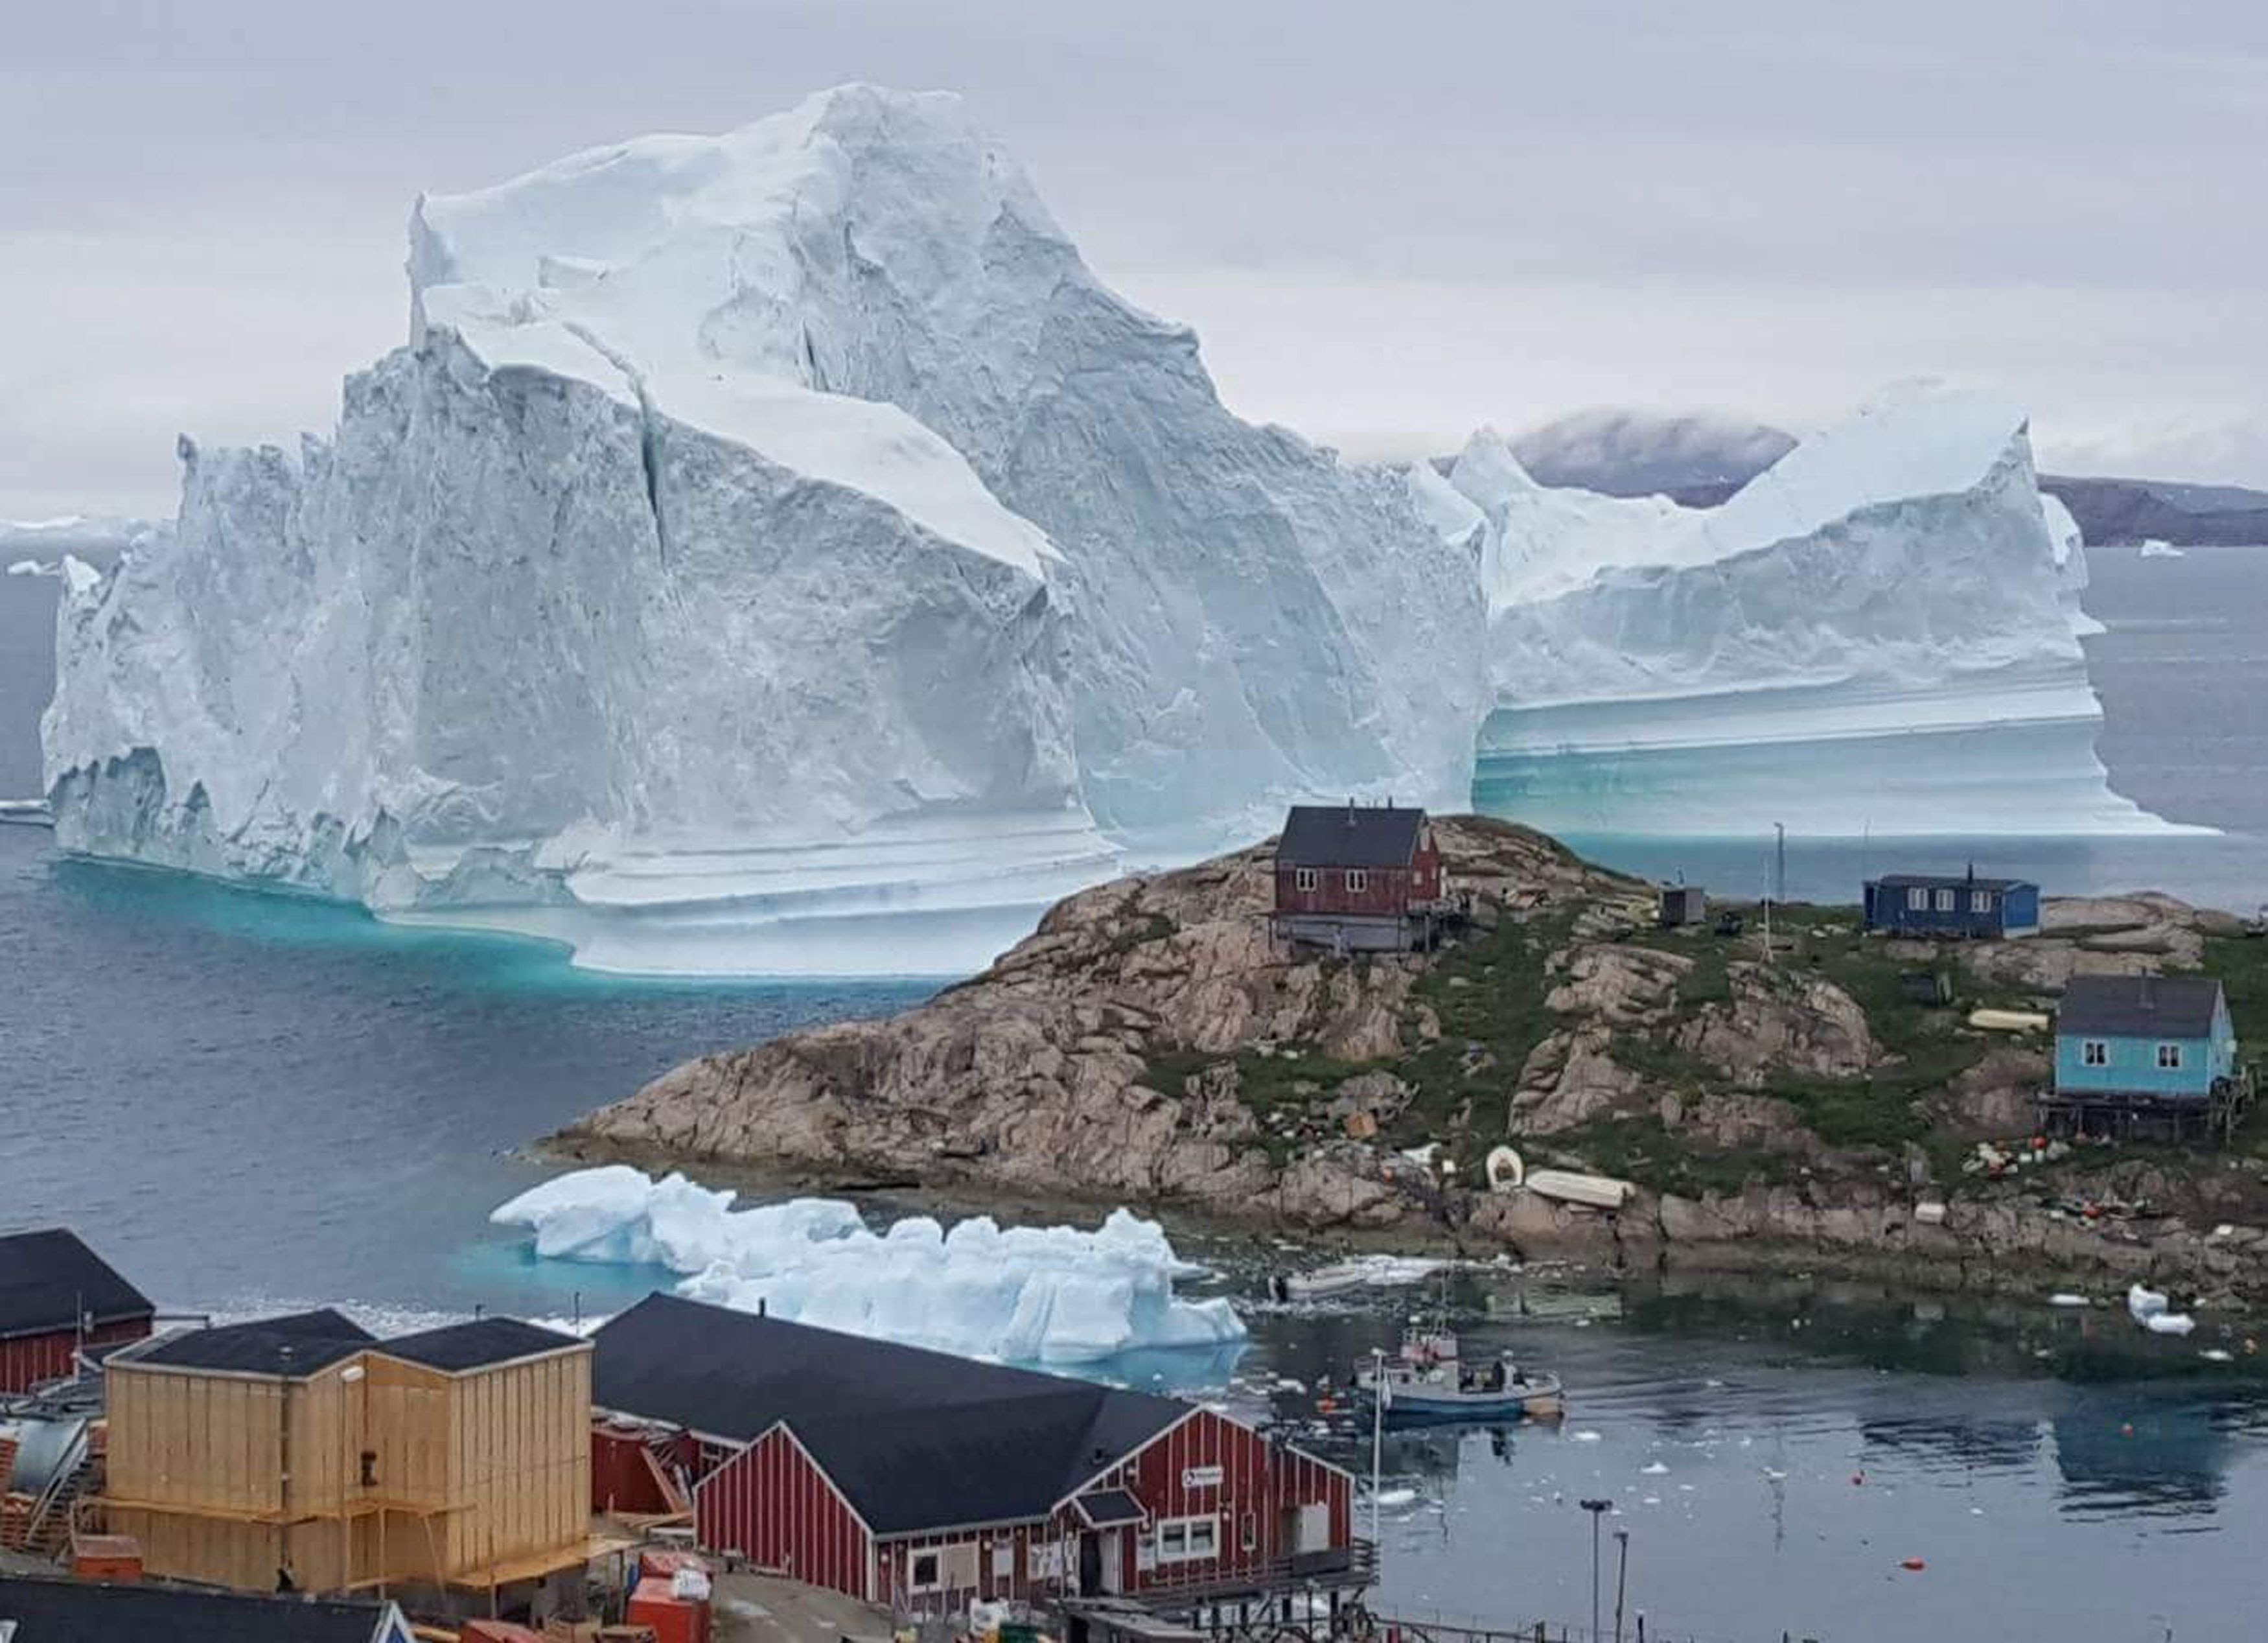 DENMARK OUTMandatory Credit: Photo by KARL PETERSEN/EPA-EFE/REX/Shutterstock (9760878a)A general view shows an iceberg stranded near the village of Innaarsuit, in the Avannaata Municipality, northwestern Greenland, 12 July 2018 (issued 13 July 2018). The Avannaata Municipality was alarmed on 11 July, after a huge iceberg was grounded just outside the village of Innaarsuit. According to local media, police asked villagers who live closest to the water, to leave their houses over fears the iceberg could calve and affect the village with a tsunami.Iceberg grounded outside village in northwestern Greenland, Innaarsuit - 12 Jul 2018